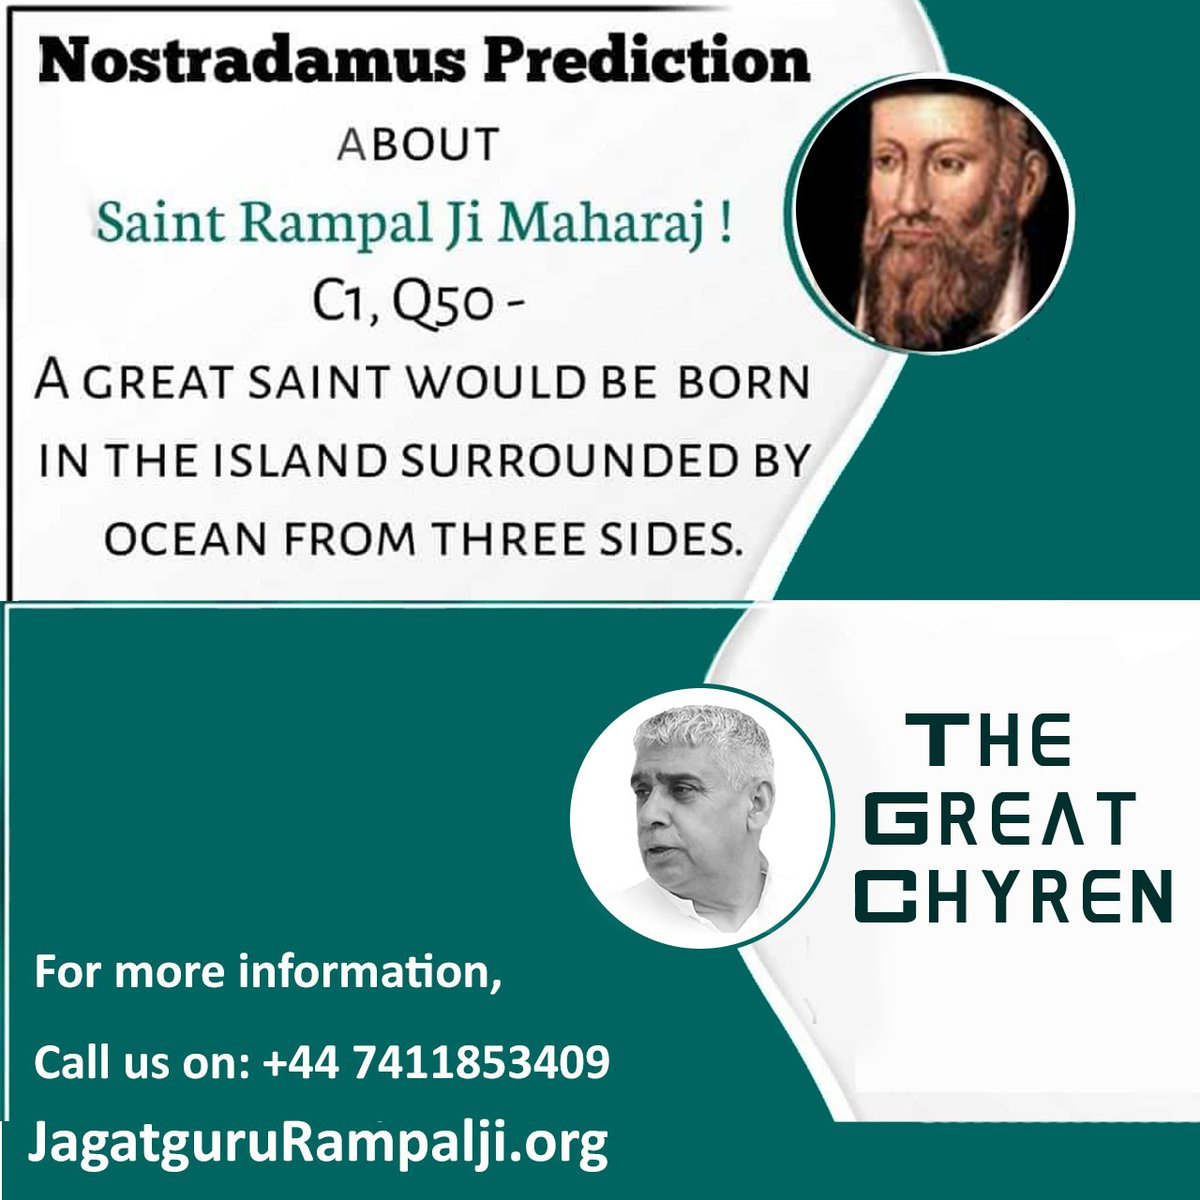 #GodMorningFriday #FridayThoughts NOSTRADAMUS PREDICTION ABOUT SAINT RAMPAL JI MAHARAJ !  Under the leadership of Chyren, the Golden Age will descend on the sacred land (India) of this Earth. @SaintRampalJiM  Visit Satlok Ashram YouTube Channel 🙏👇👇👇🙏